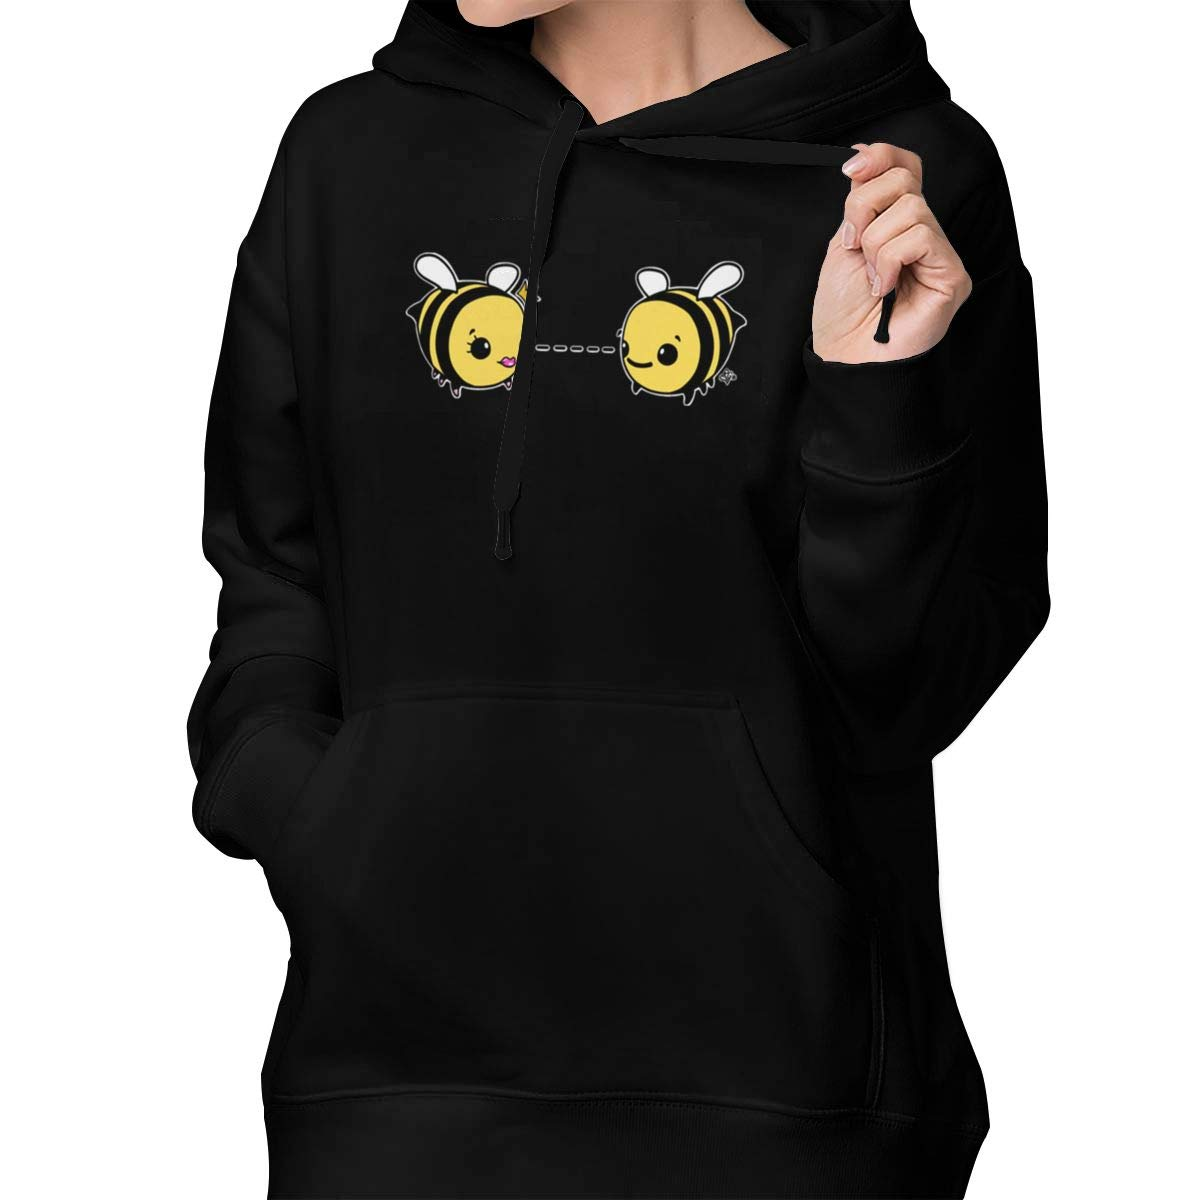 Lponvx Bee Loved Women Girl Basic Lightweight Hooded Blouse Pullover with Front Pocket